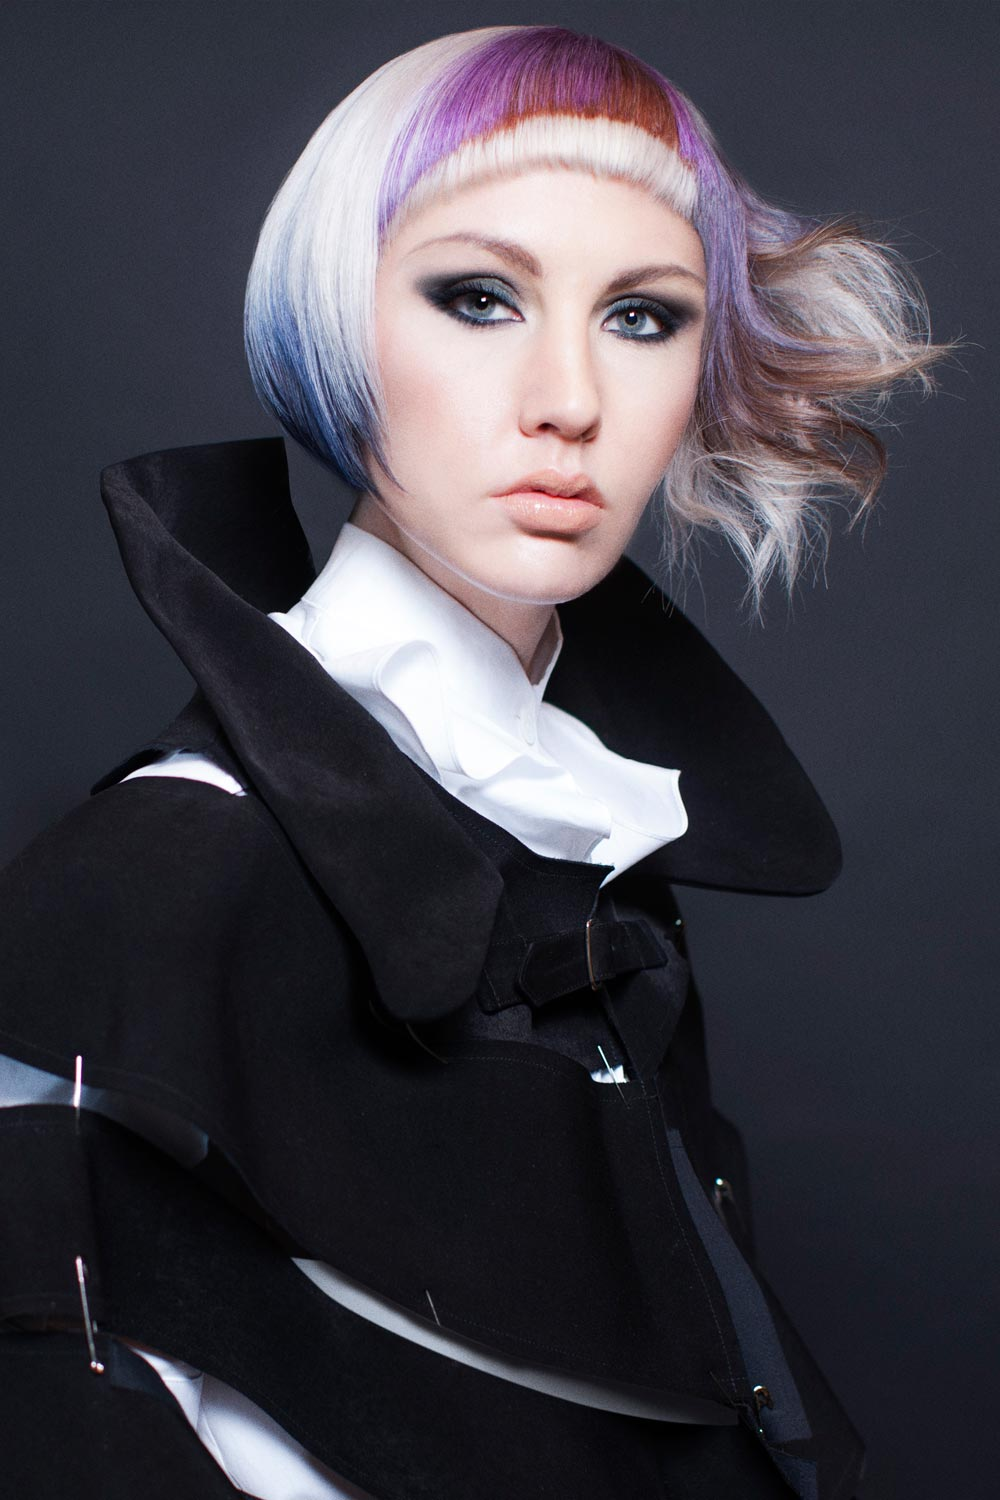 Daniel Rubin, TRIO Salon, Ltd., Chicago, IL - Goldwell Color Zoom 2015: Partner Semi-Finalists